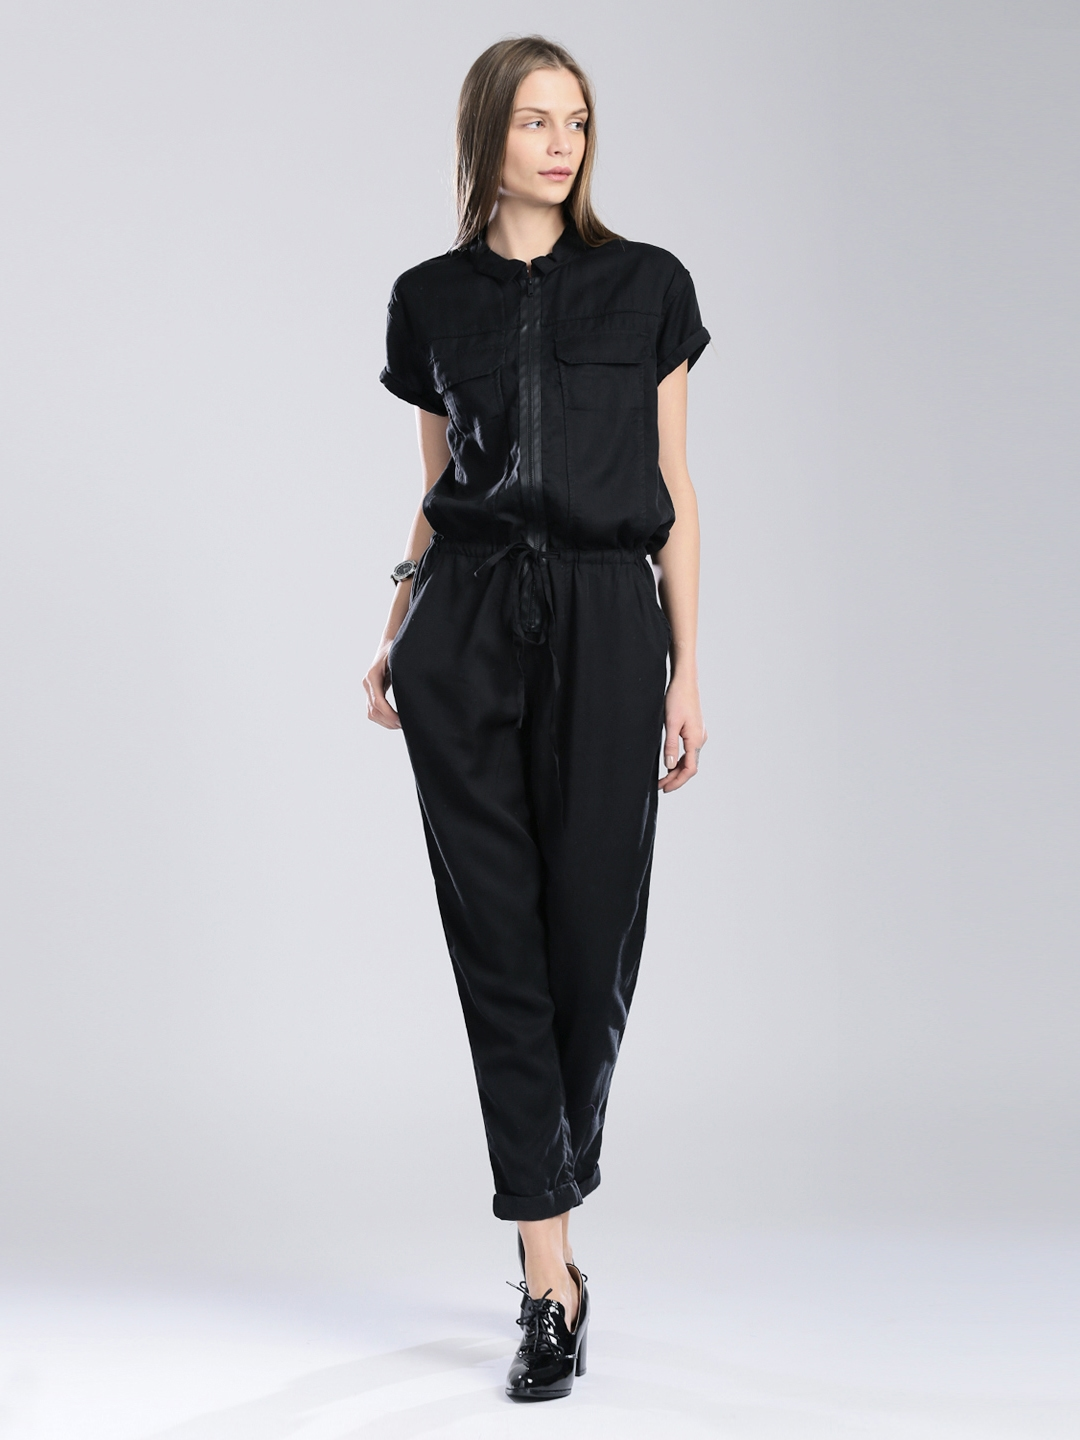 8a00259df76 Buy Calvin Klein Jeans Black Jumpsuit - Jumpsuit for Women 551694 ...